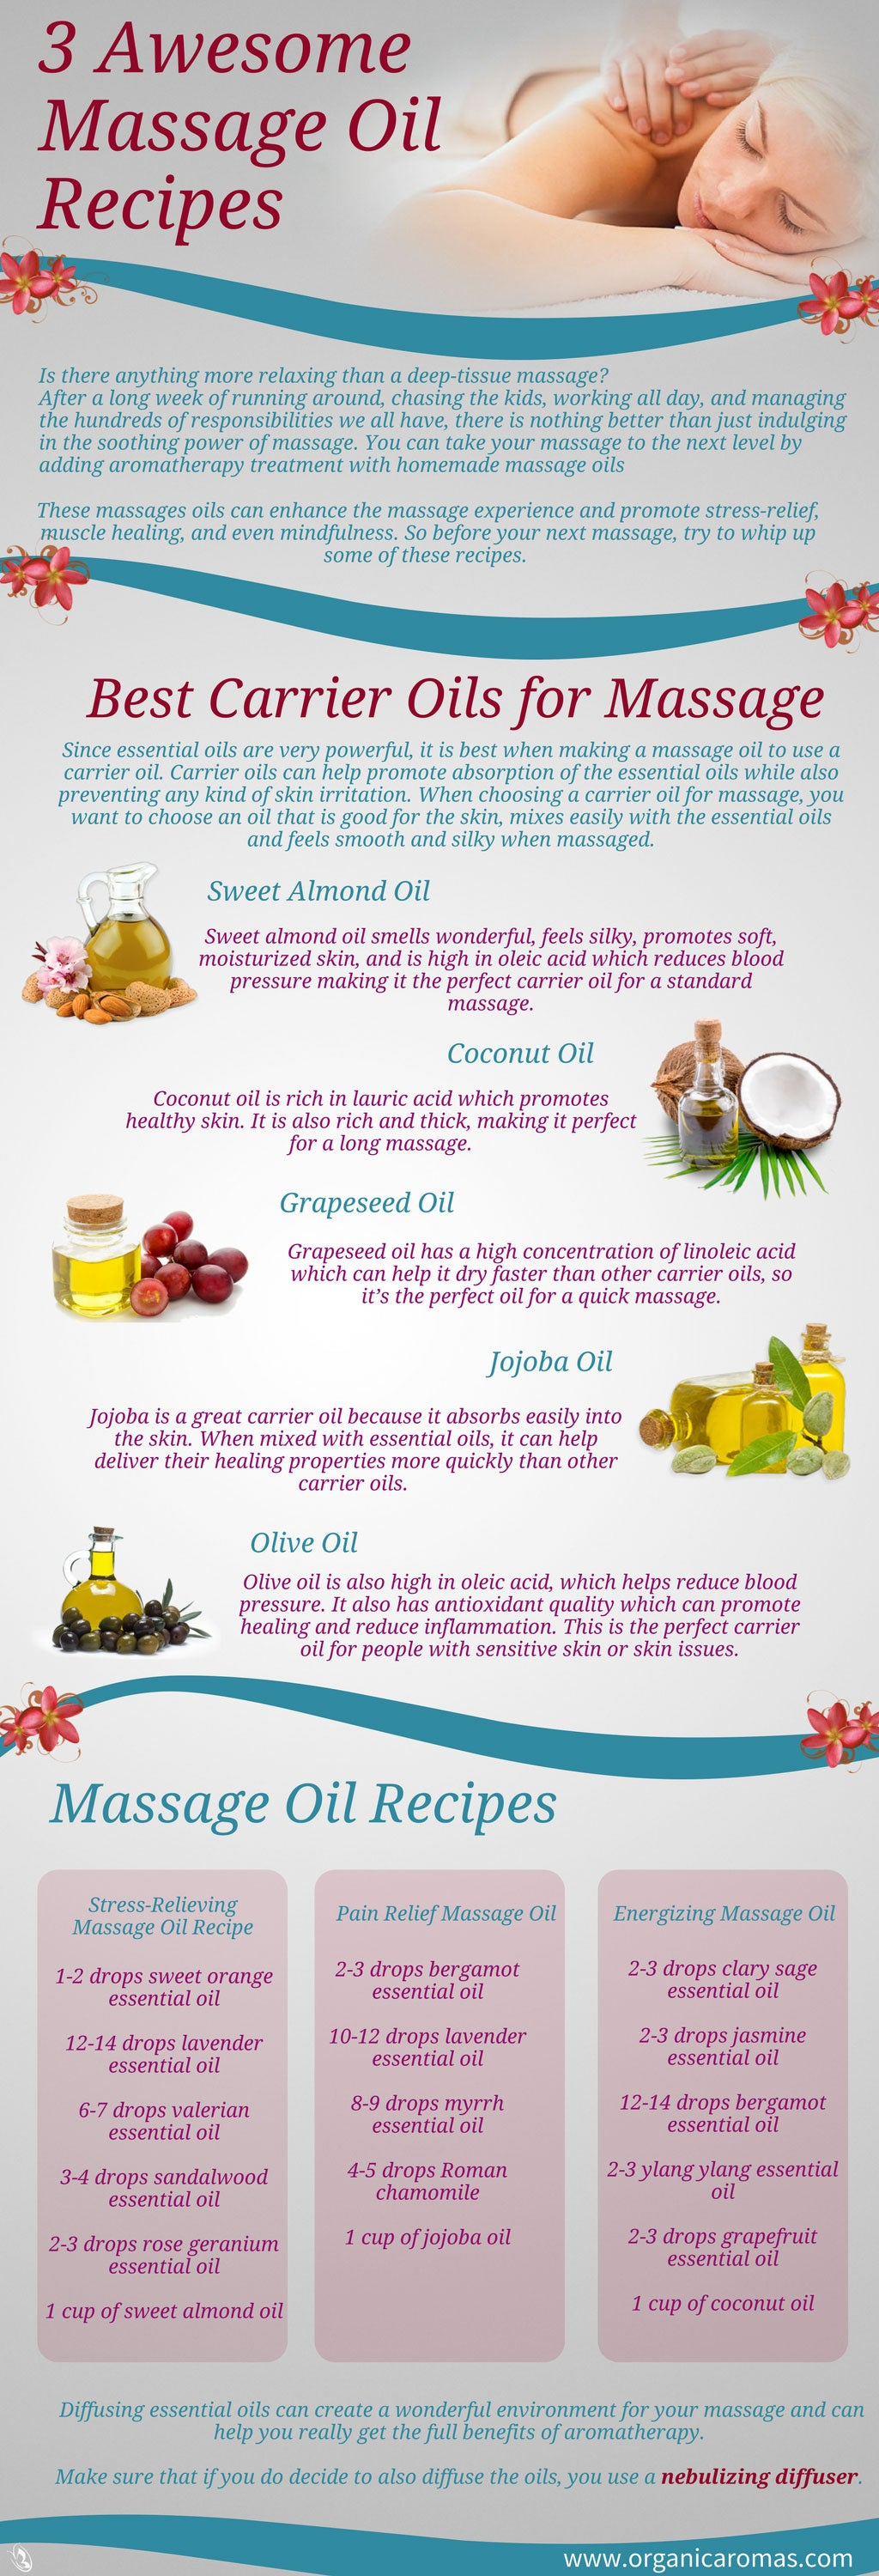 3 Awesome Massage Oil Recipes - InfoGraphic